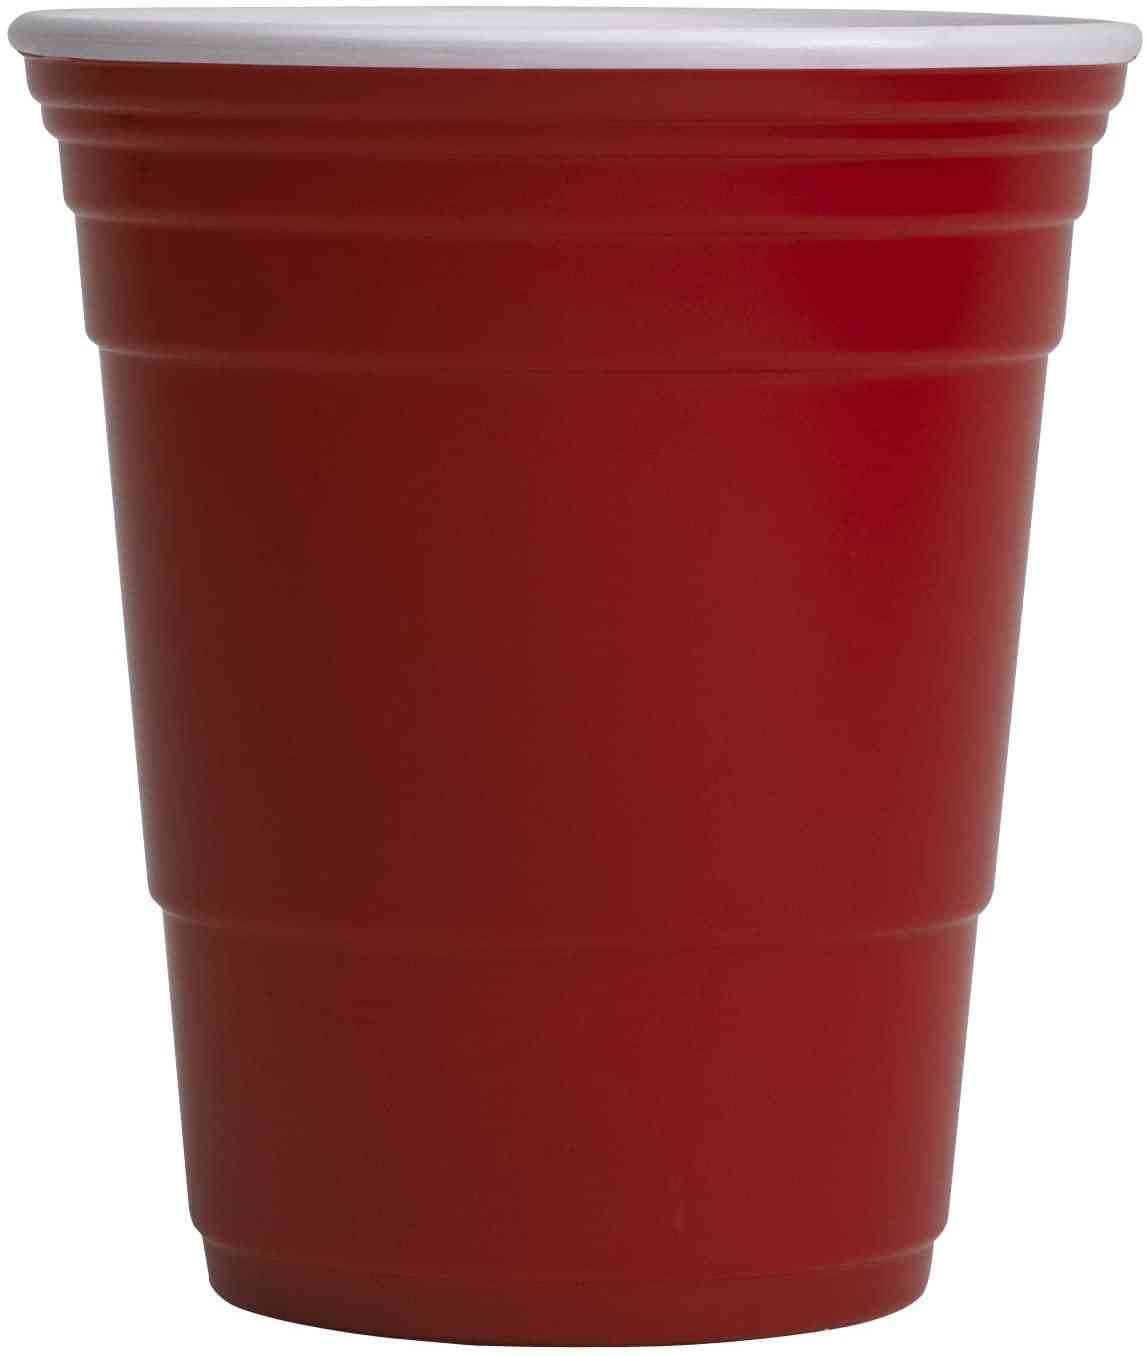 Red Cup Living Reusable Beverage Cup, 18-ounce, Red